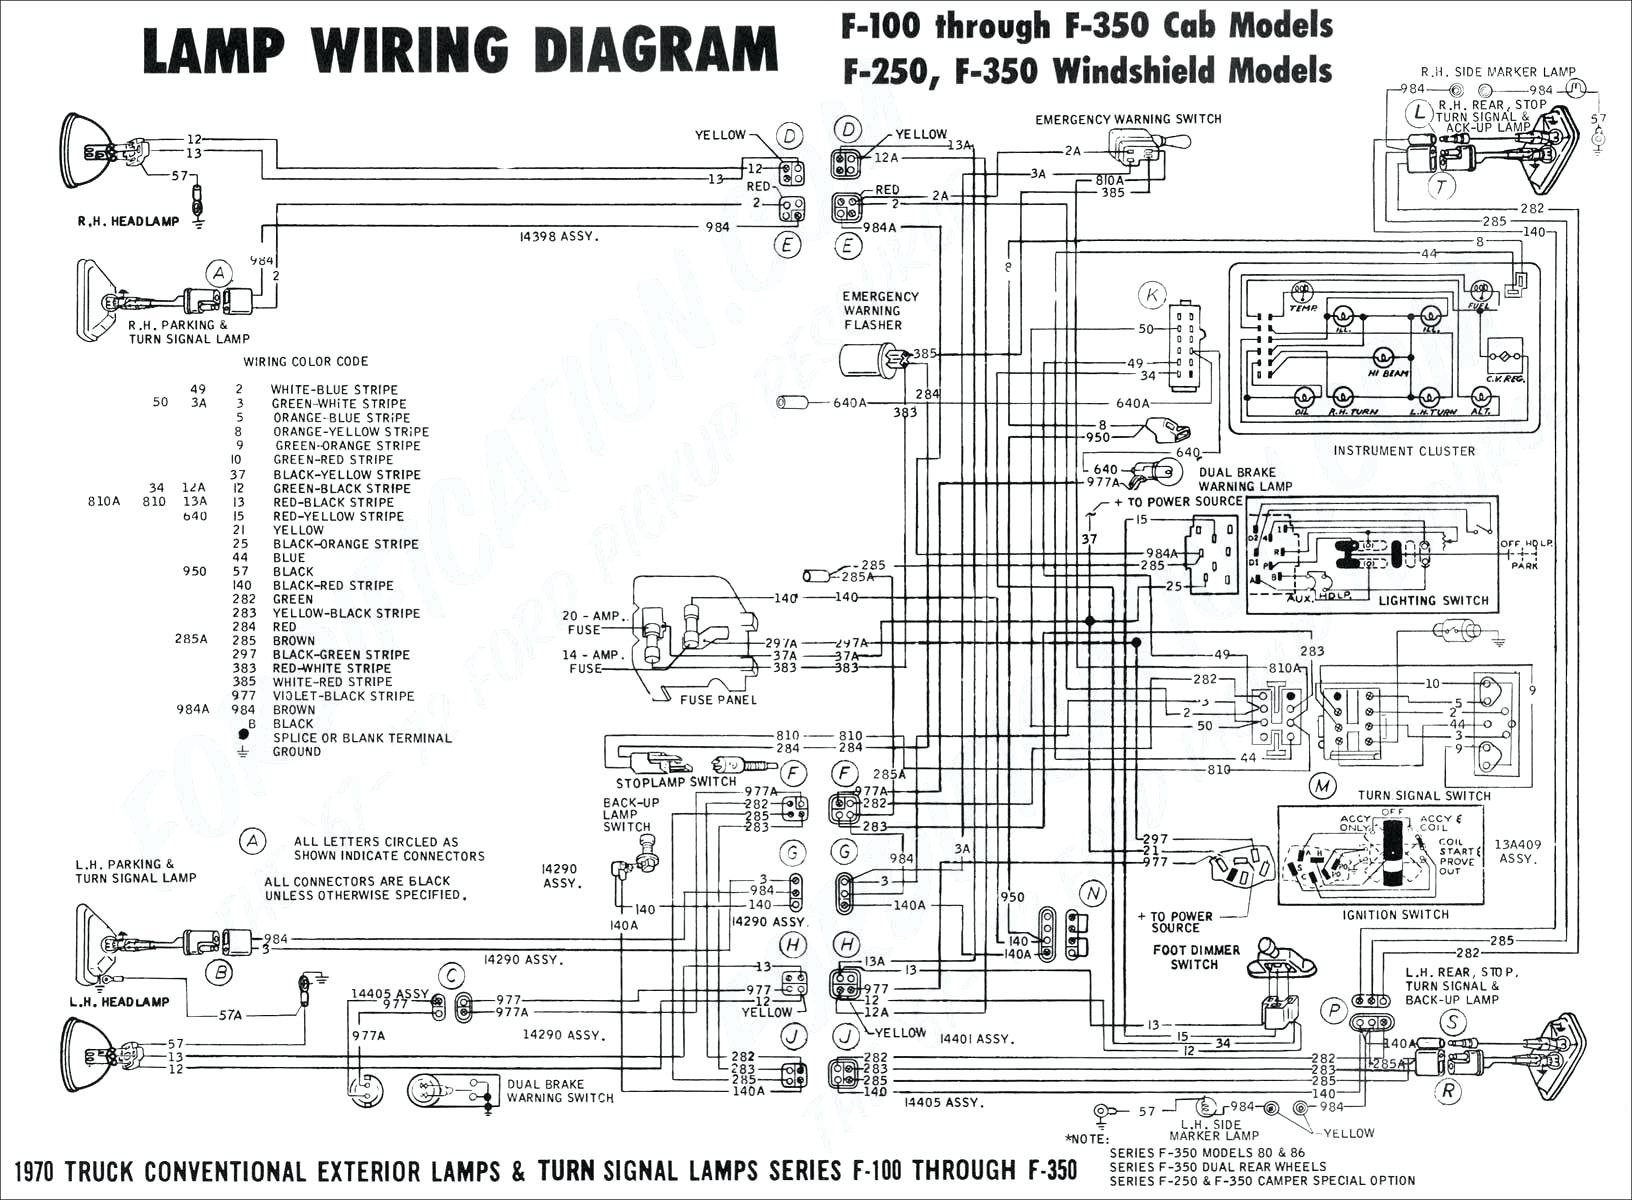 Water Temp Gauge Wiring Diagram Get Free Image About Wiring Diagram